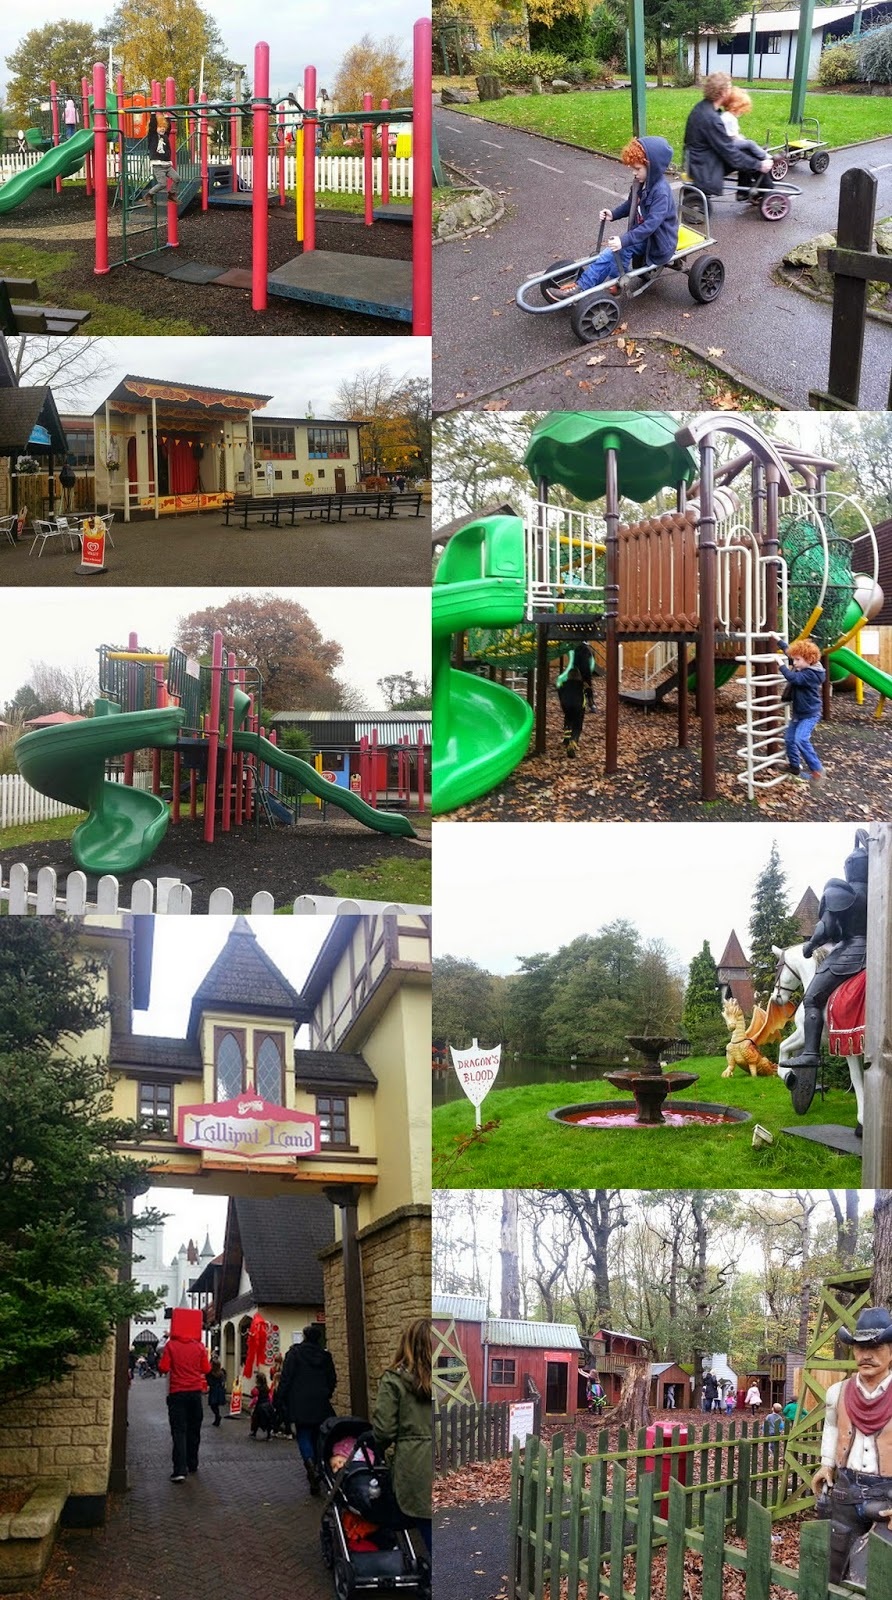 Gulliver's World Children's theme parkLilliput land play areas and amusements